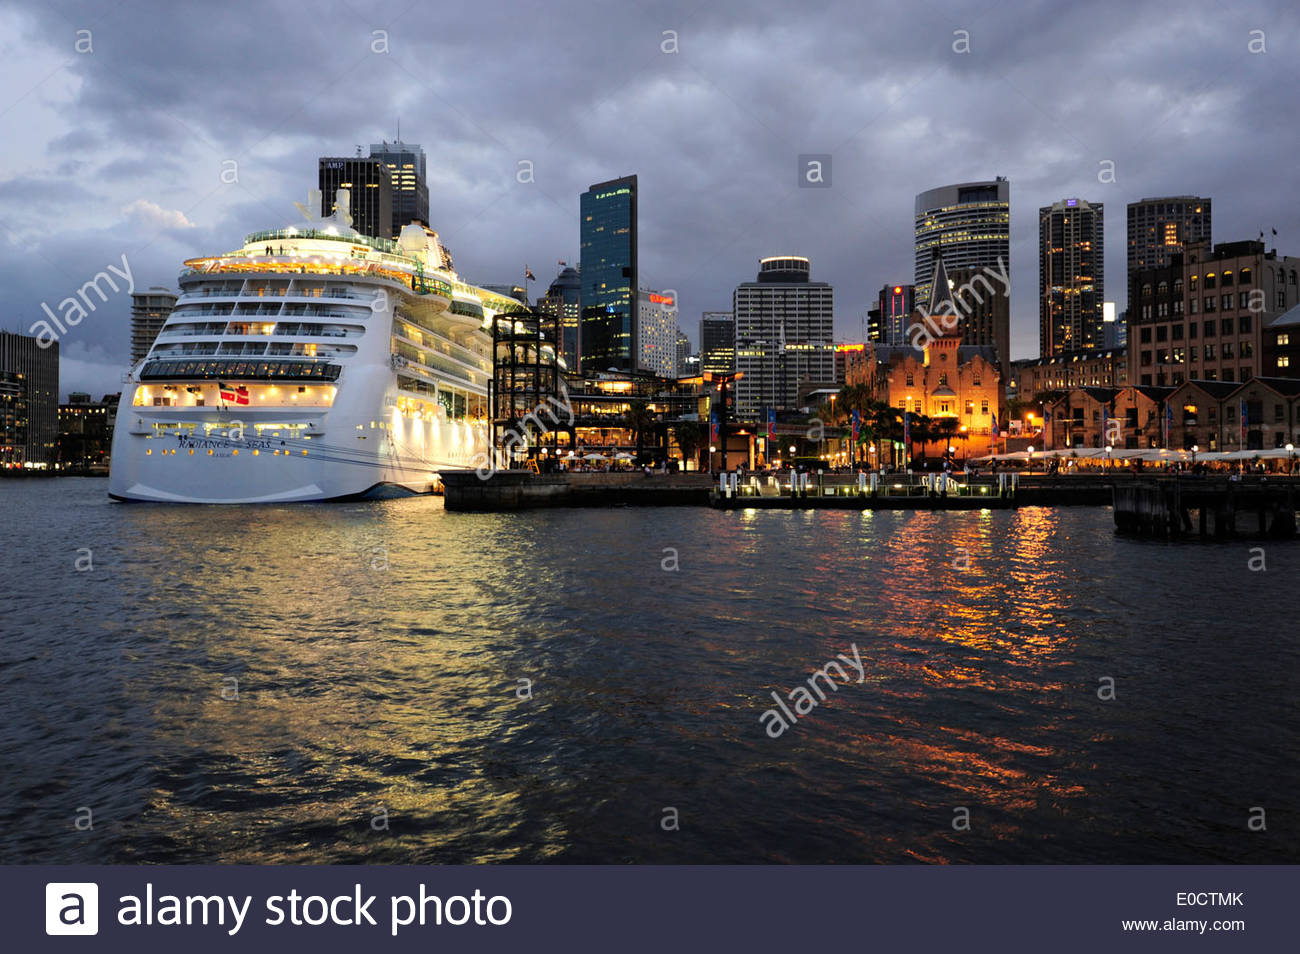 Skyline of the Central Business District and cruise ship at the Overseas Passenger Terminal in the evening, The Rocks, Sydney Ha - Stock Image